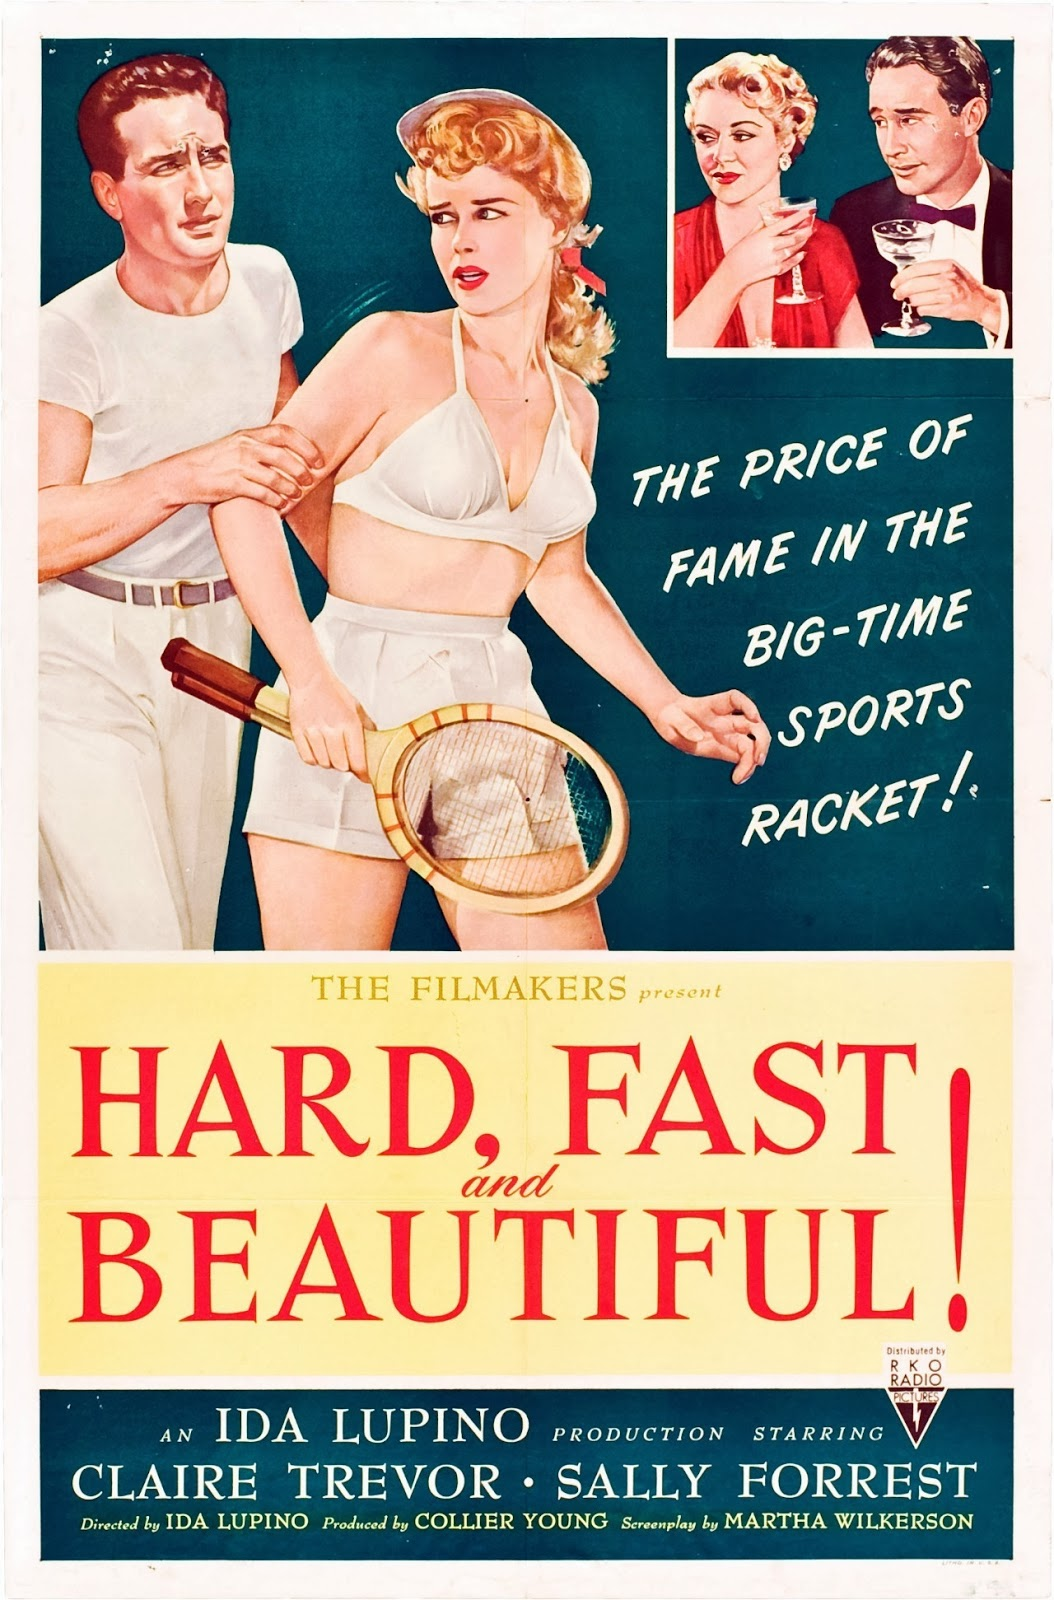 http://www.amazon.com/Hard-Fast-Beautiful-Claire-Trevor/dp/B009OU4NNW/ref=sr_1_1?s=instant-video&ie=UTF8&qid=1393809642&sr=1-1&keywords=hard+fast+and+beautiful